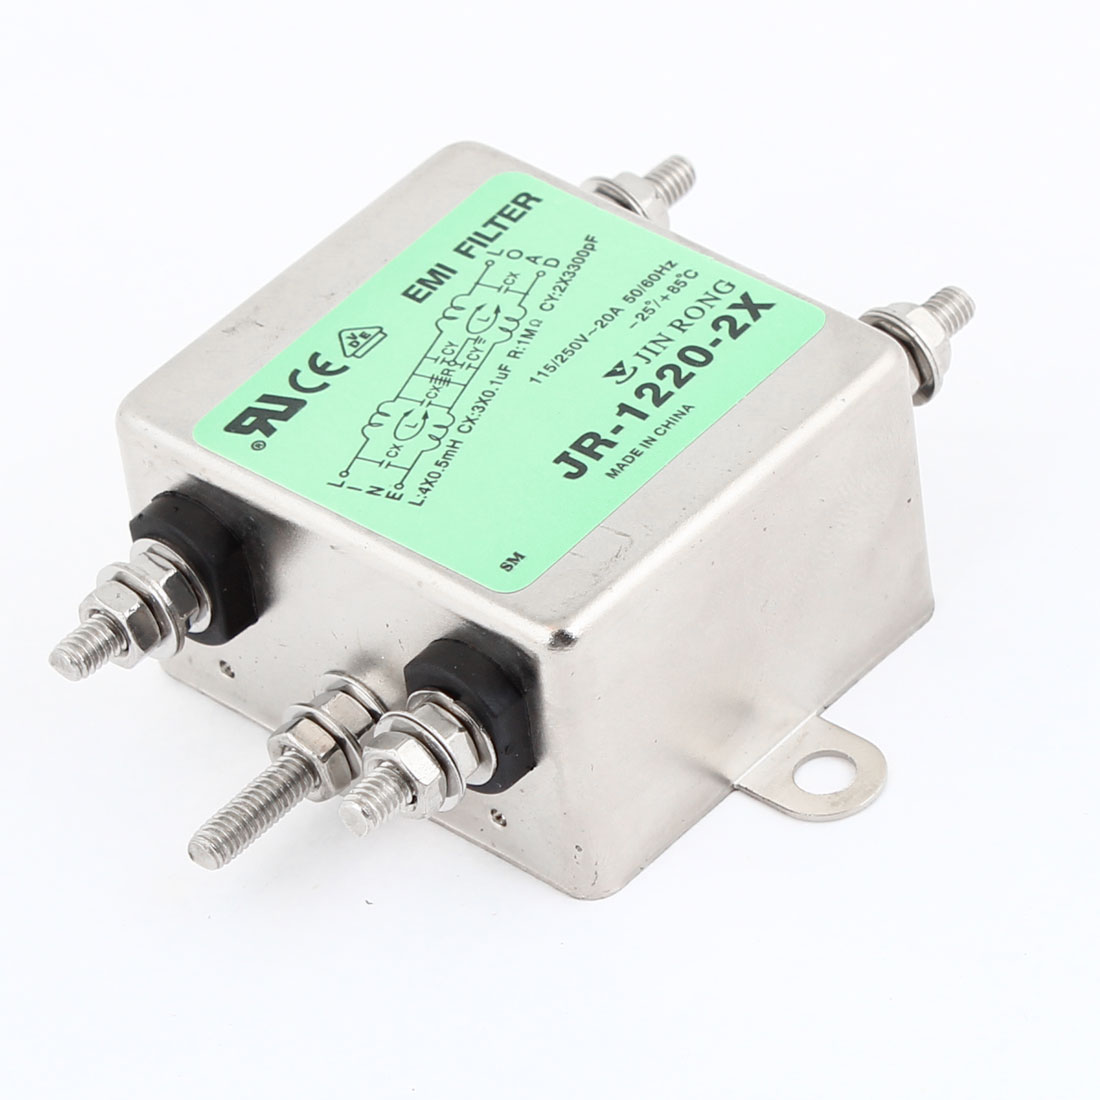 20A Rated Current AC 115/250V JR-1220-R Power Line EMI Filter